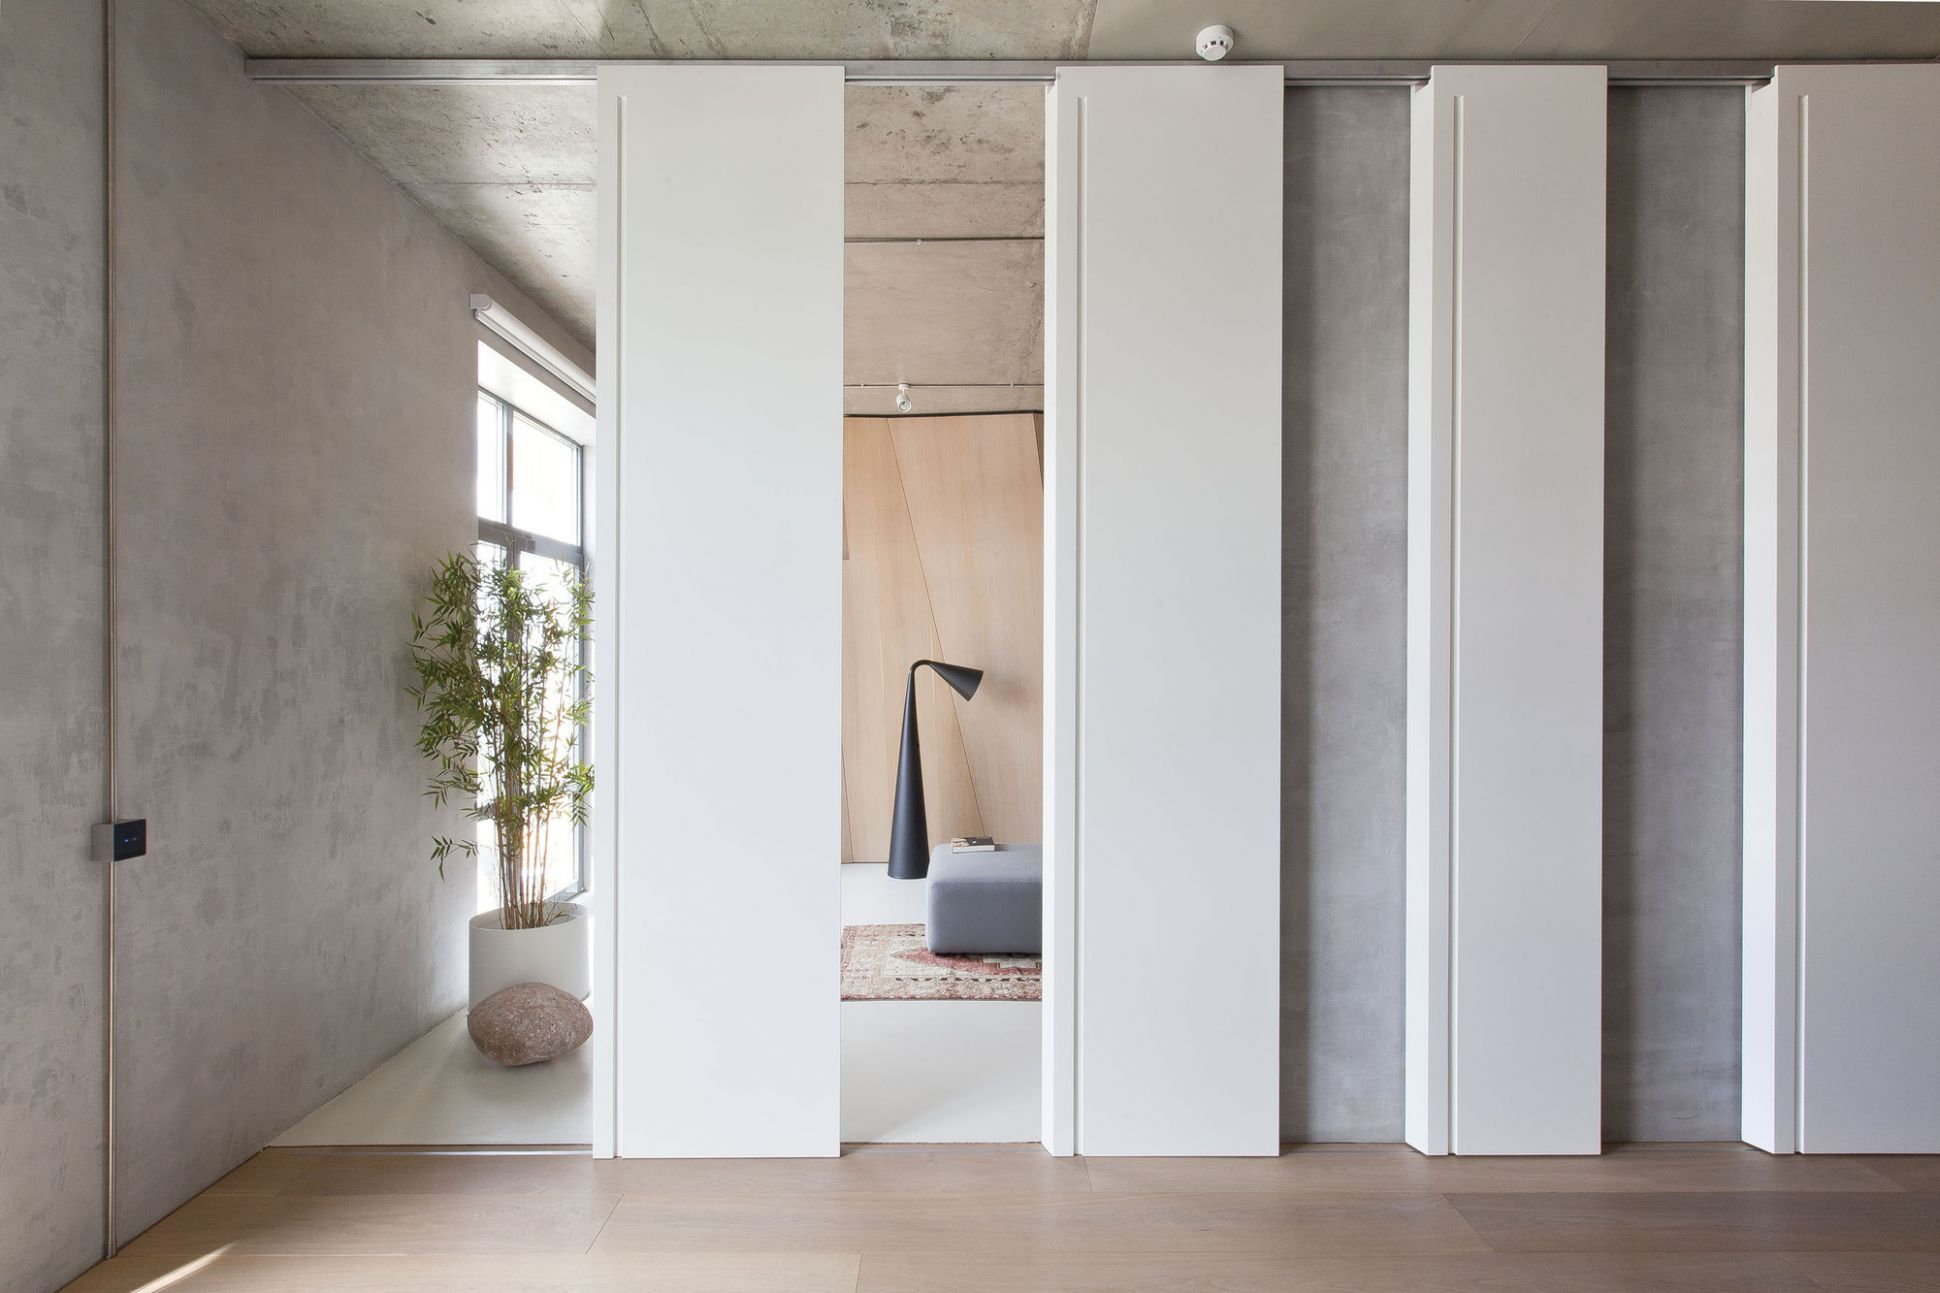 Apartment in Moscow / M12 | ArchDaily